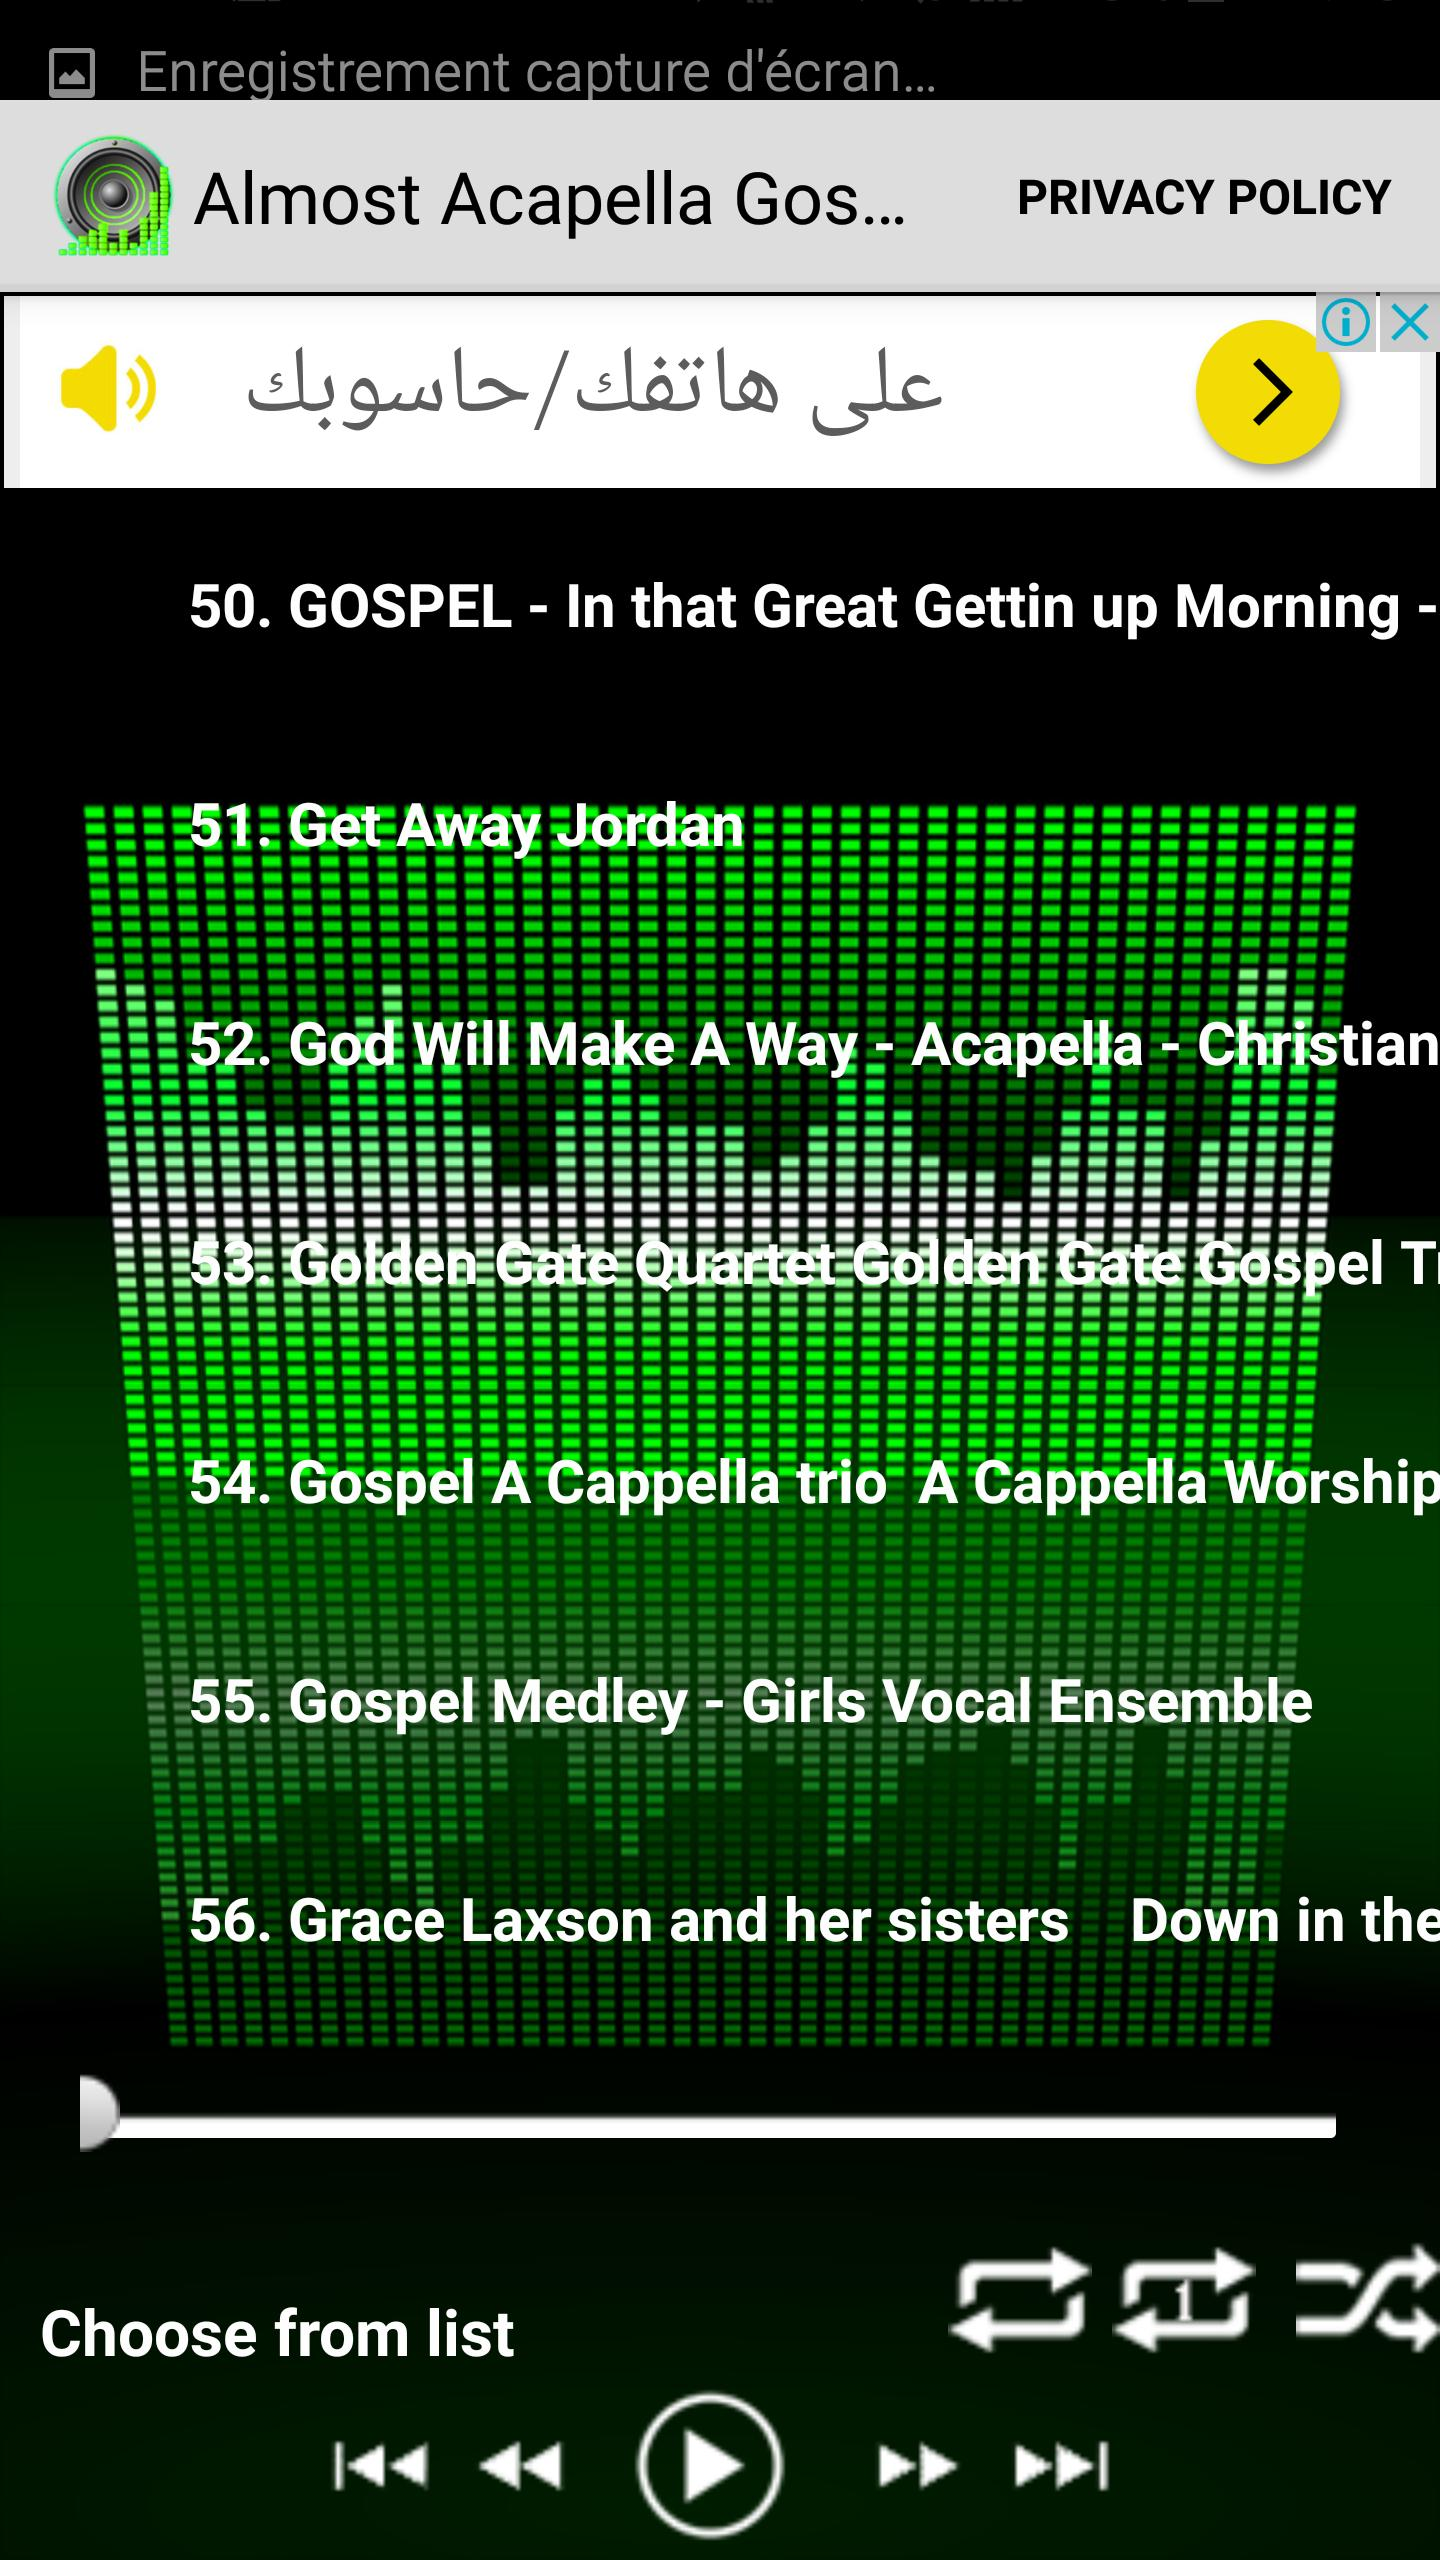 Almost Acapella Gospel Songs for Android - APK Download